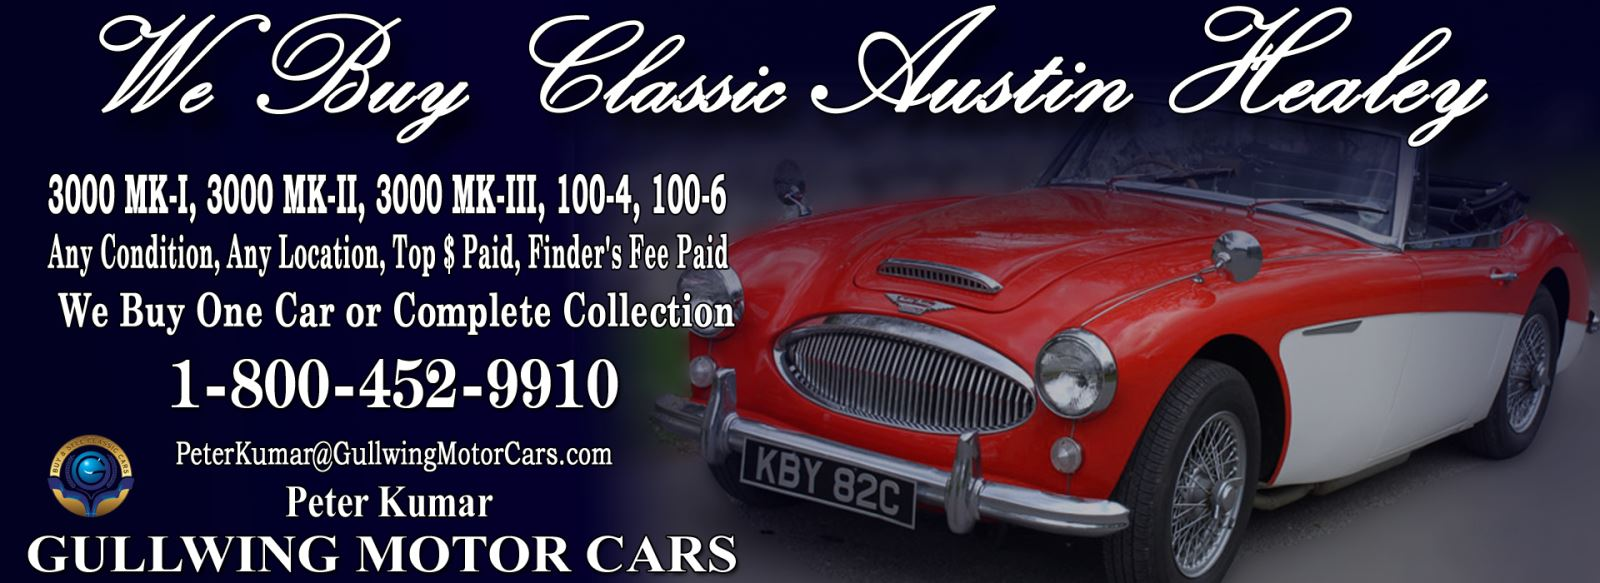 Classic Austin Healey 3000 Mark I for sale, we buy vintage Austin Healey MKI. Call Peter Kumar. Gullwing Motor